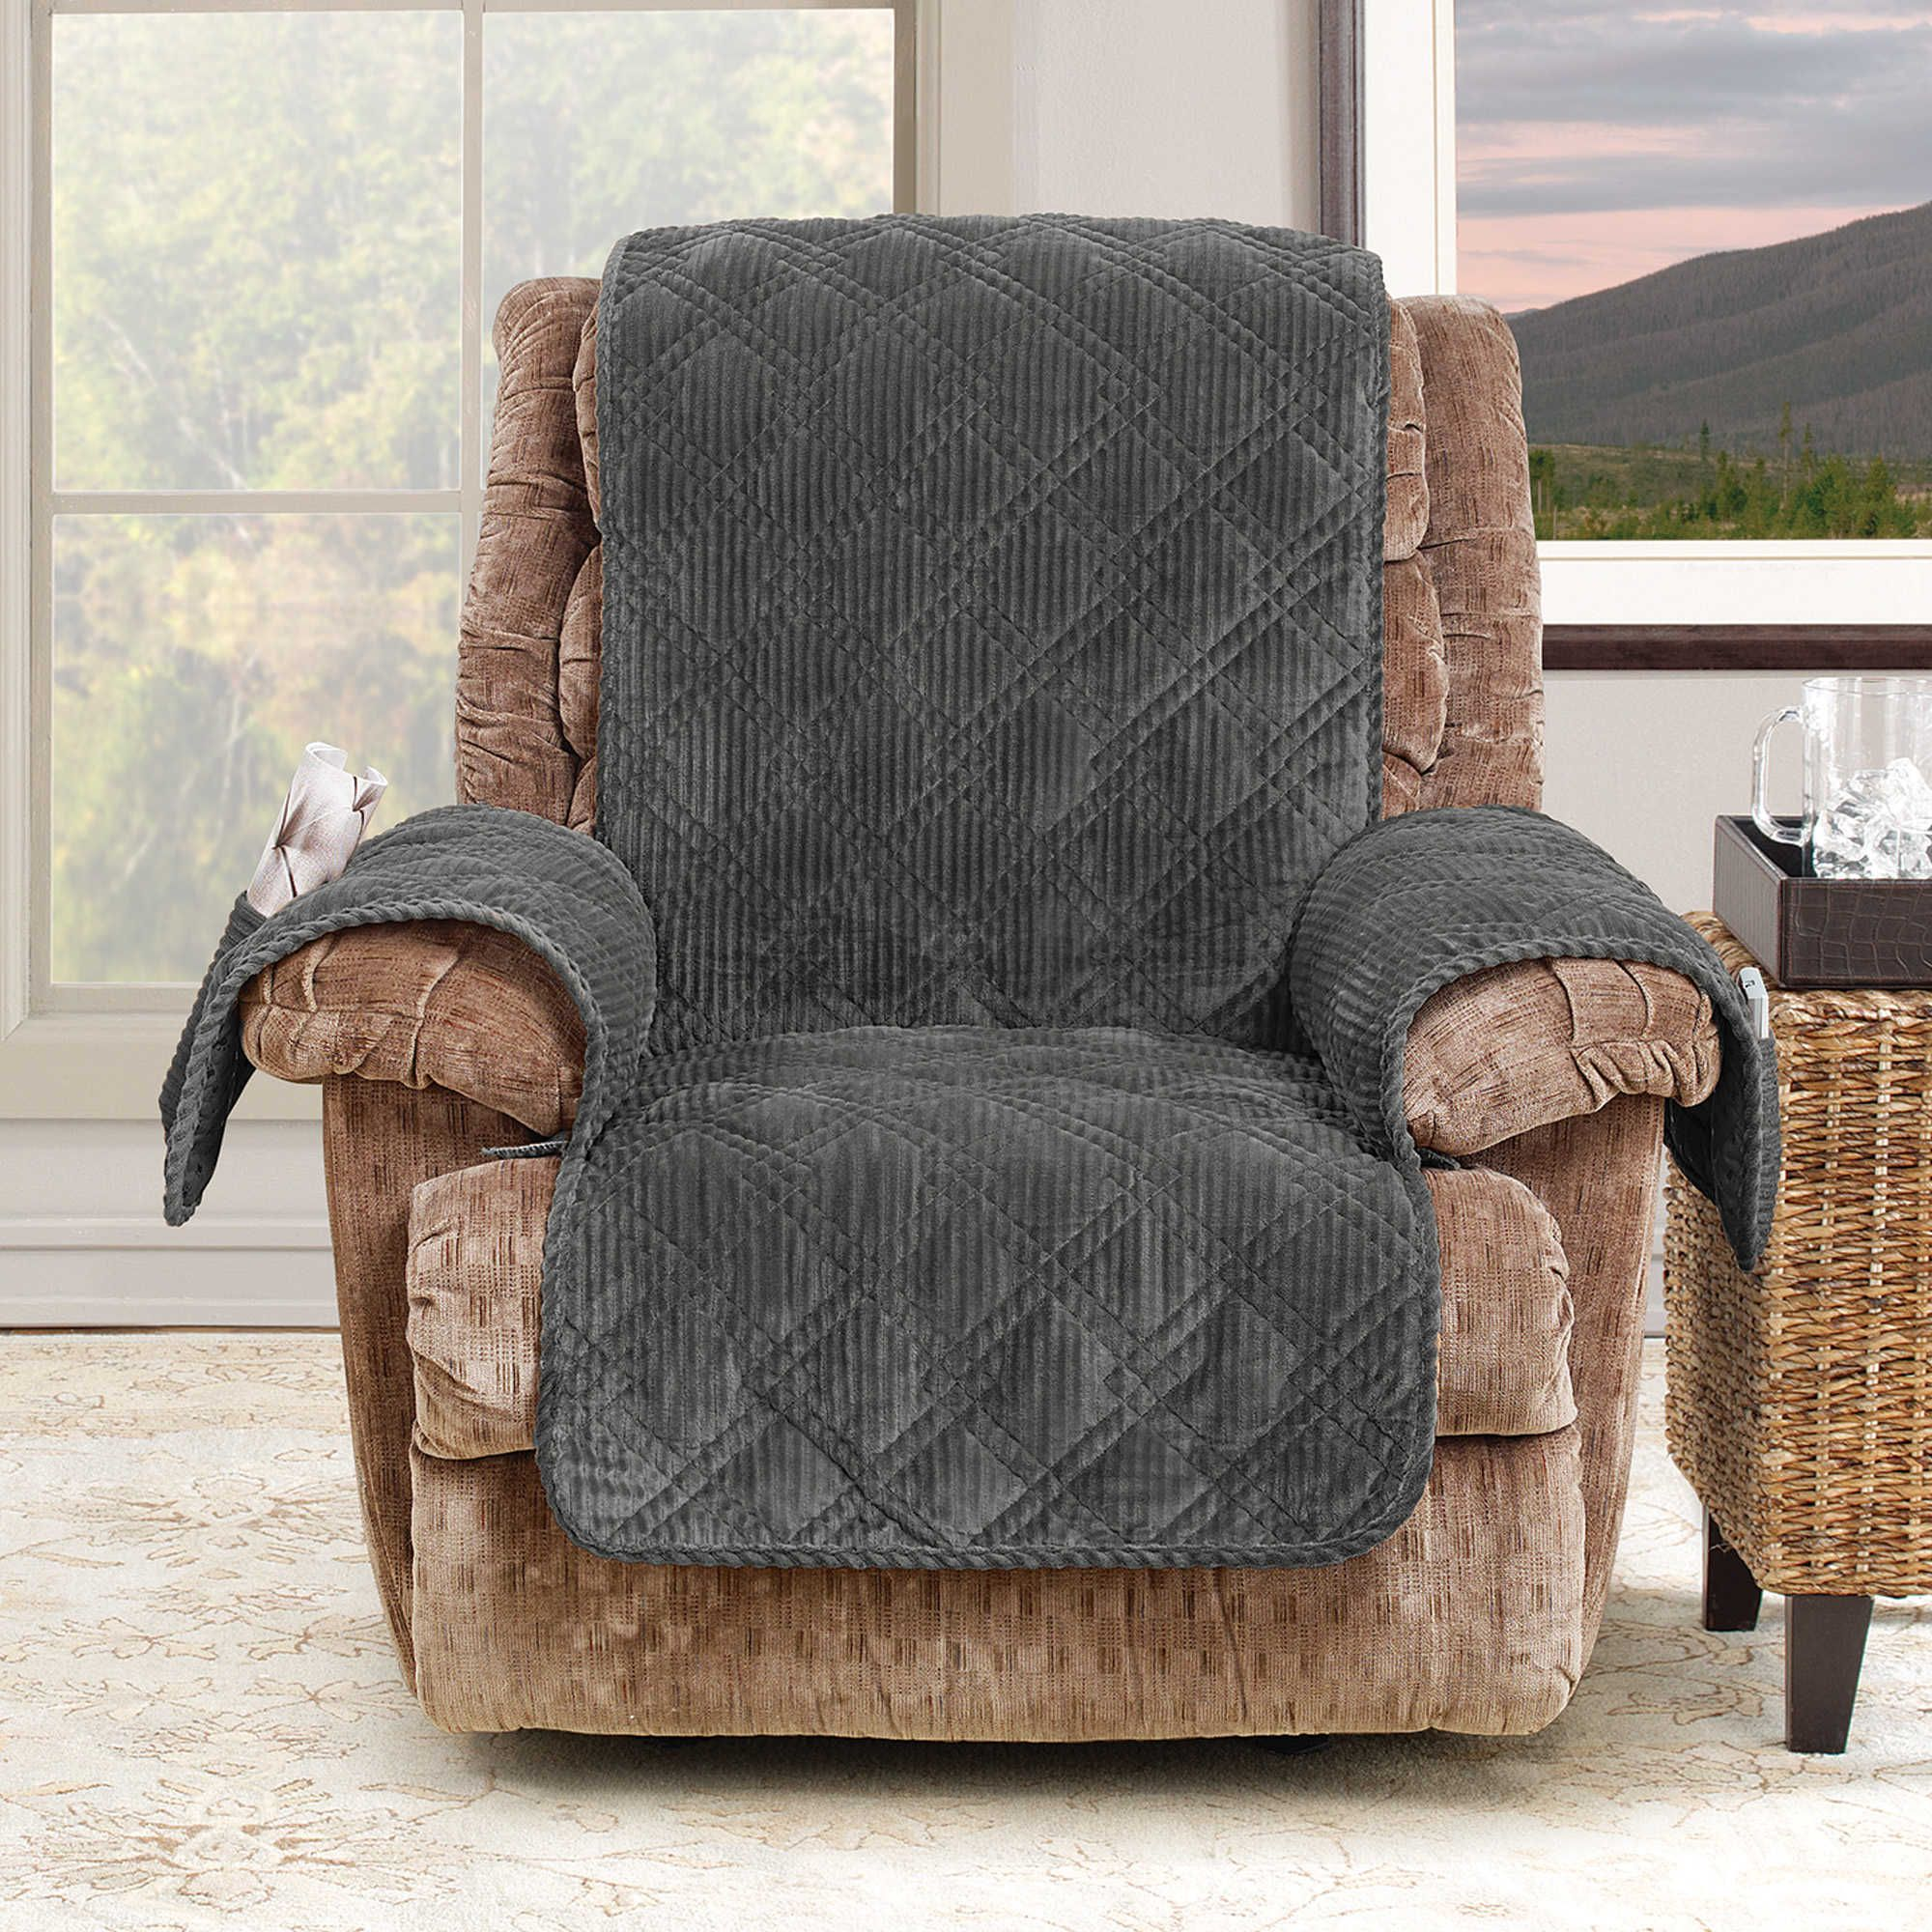 slipcovers fit by pin sure recliners cream recliner stretch slipcover plush for